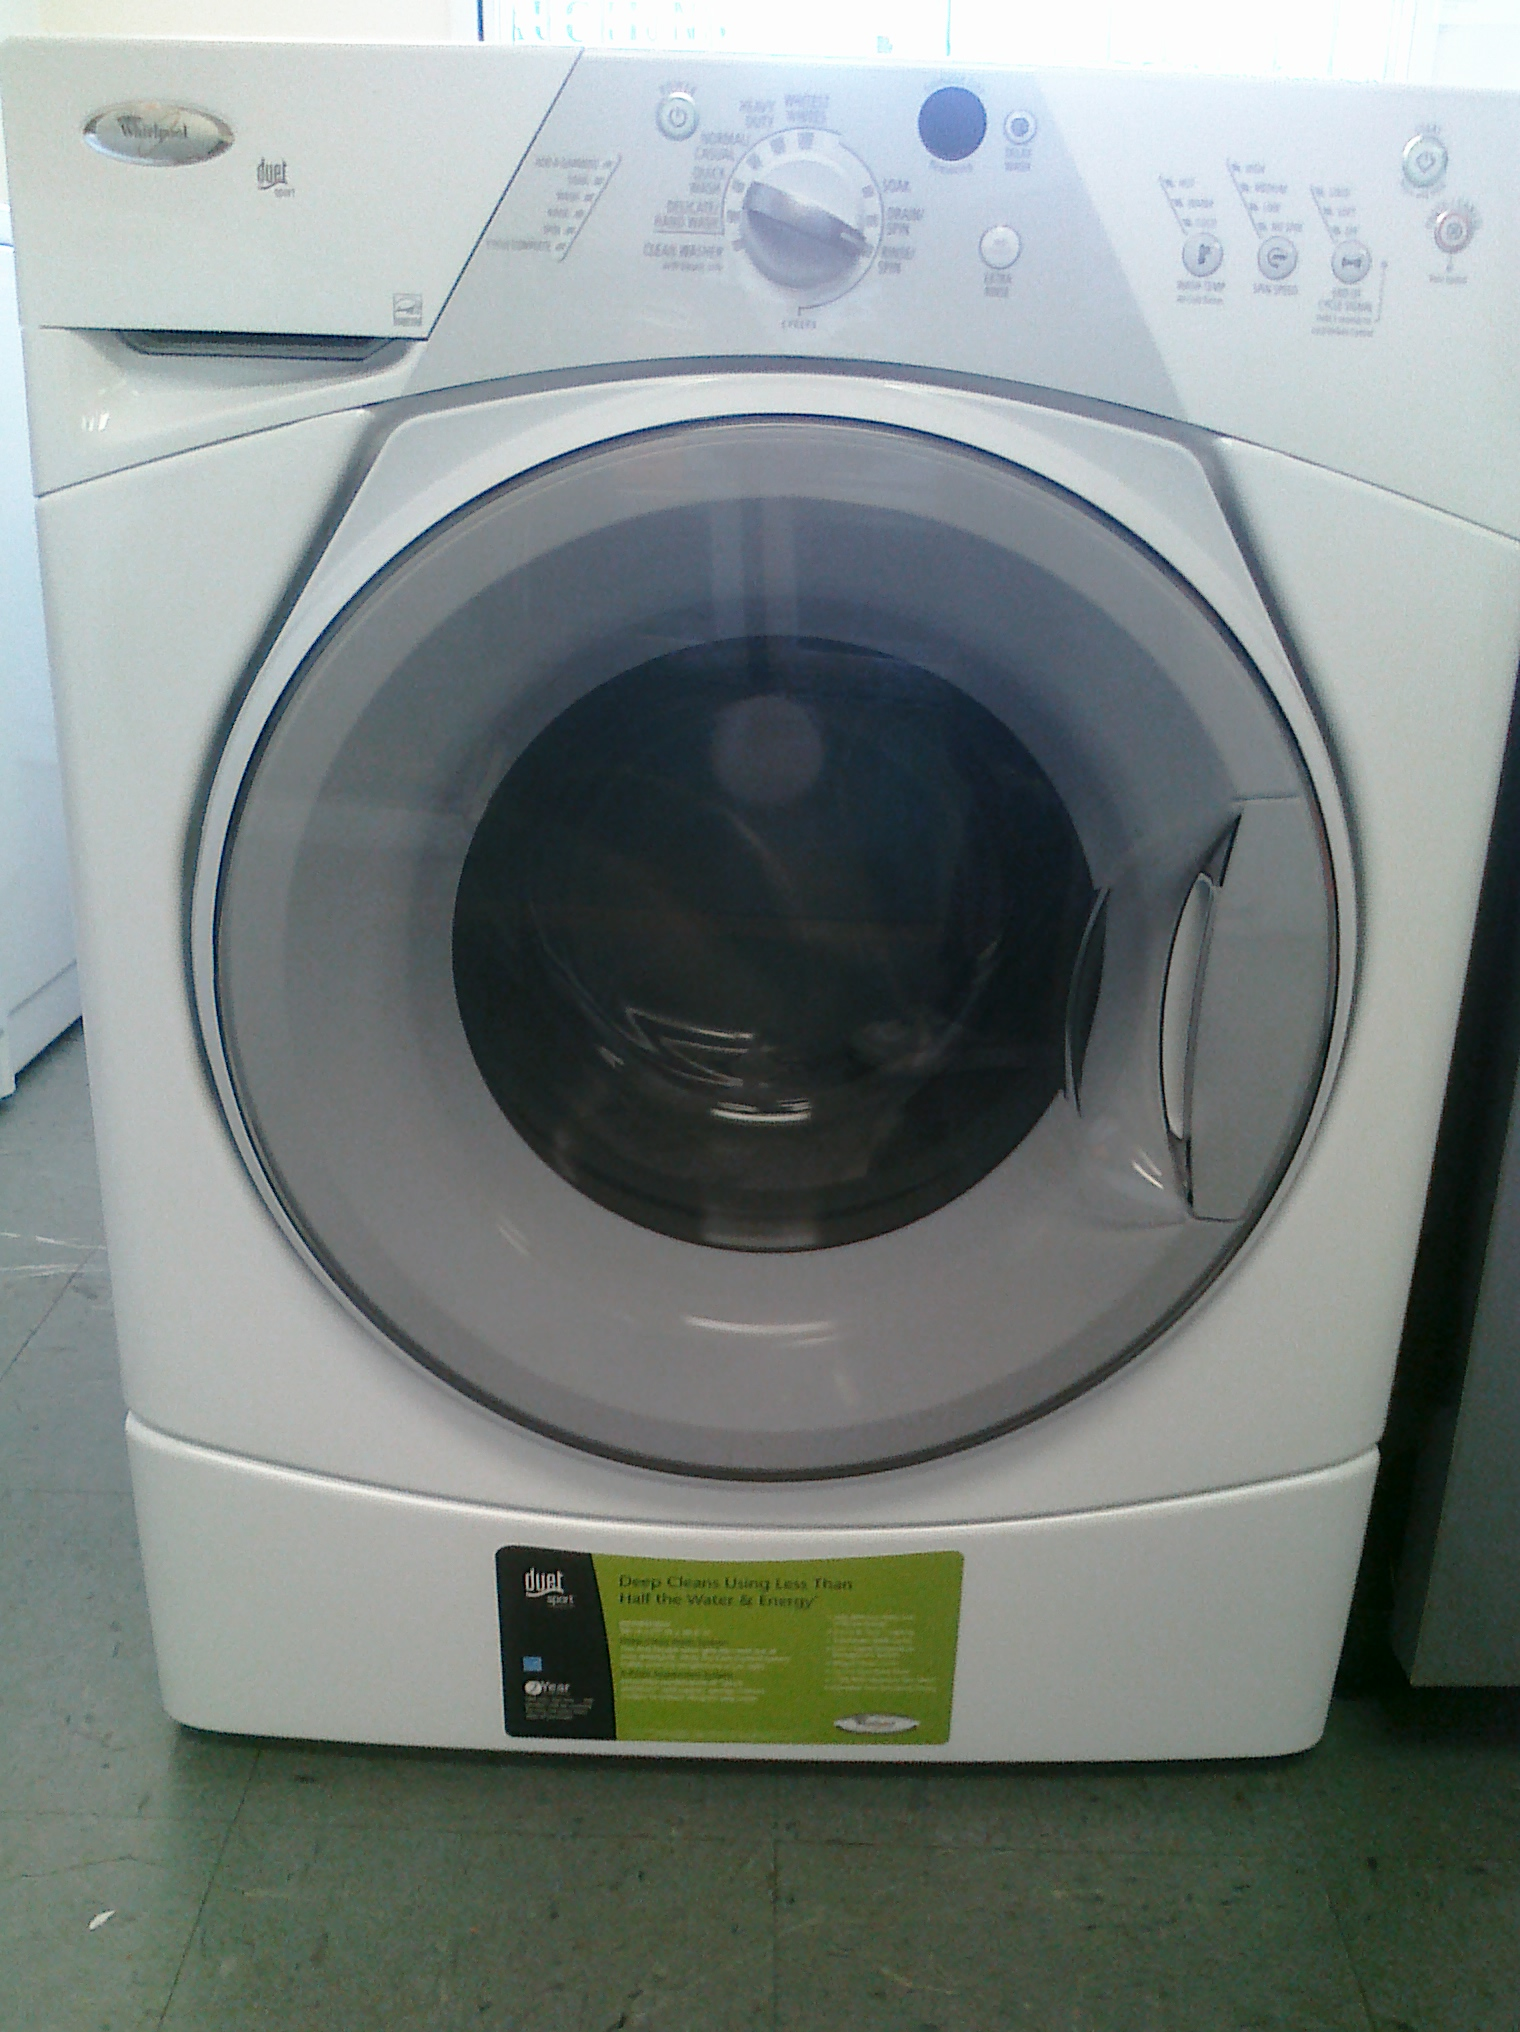 (9) Whirlpool WFW8410SW Duet Sport Front-Load Washer, White